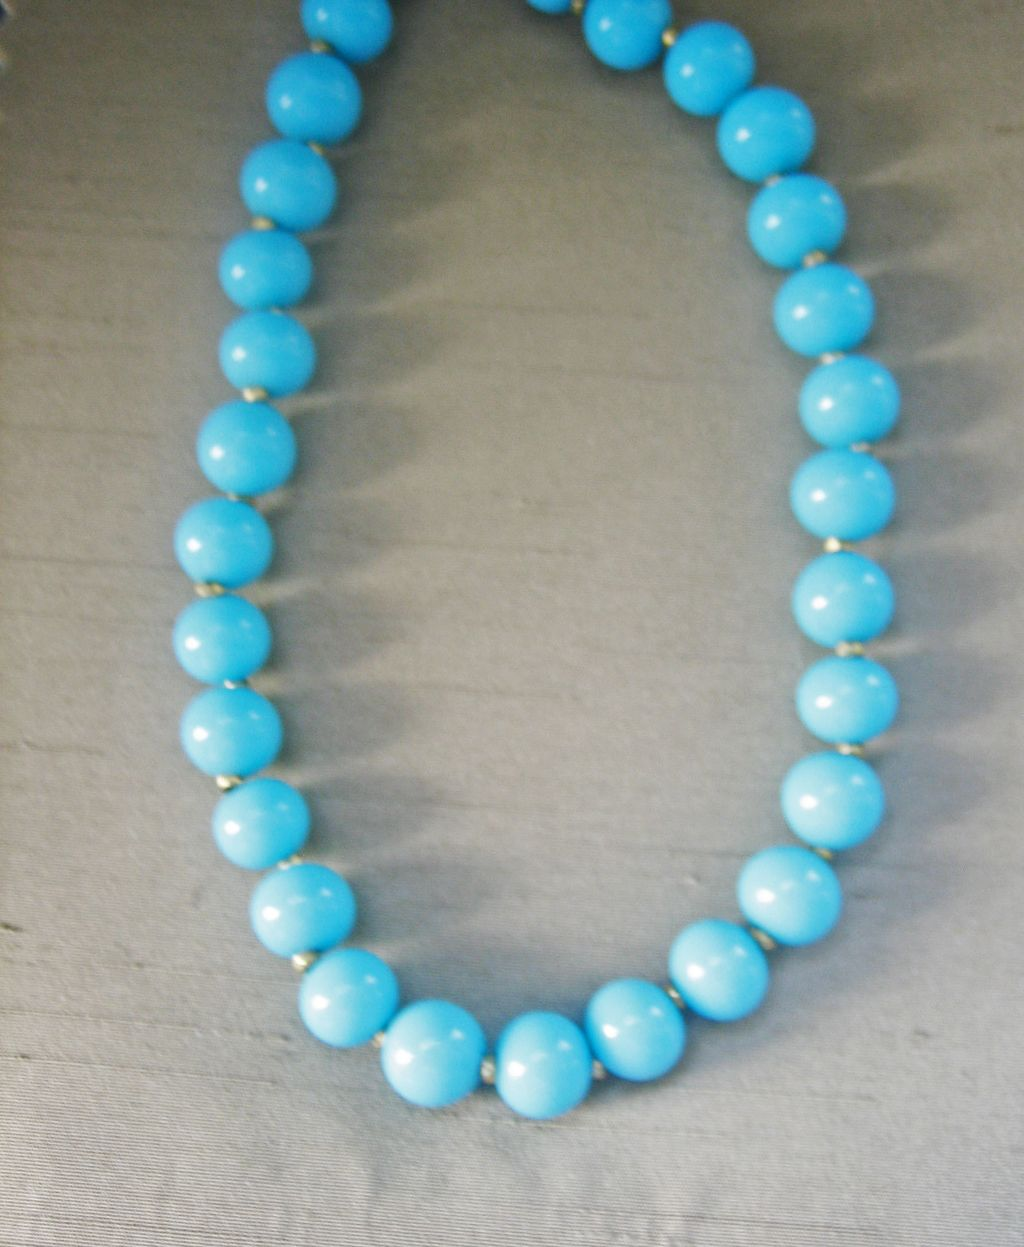 Vintage Miriam Haskell Turquoise Glass Bead Necklace